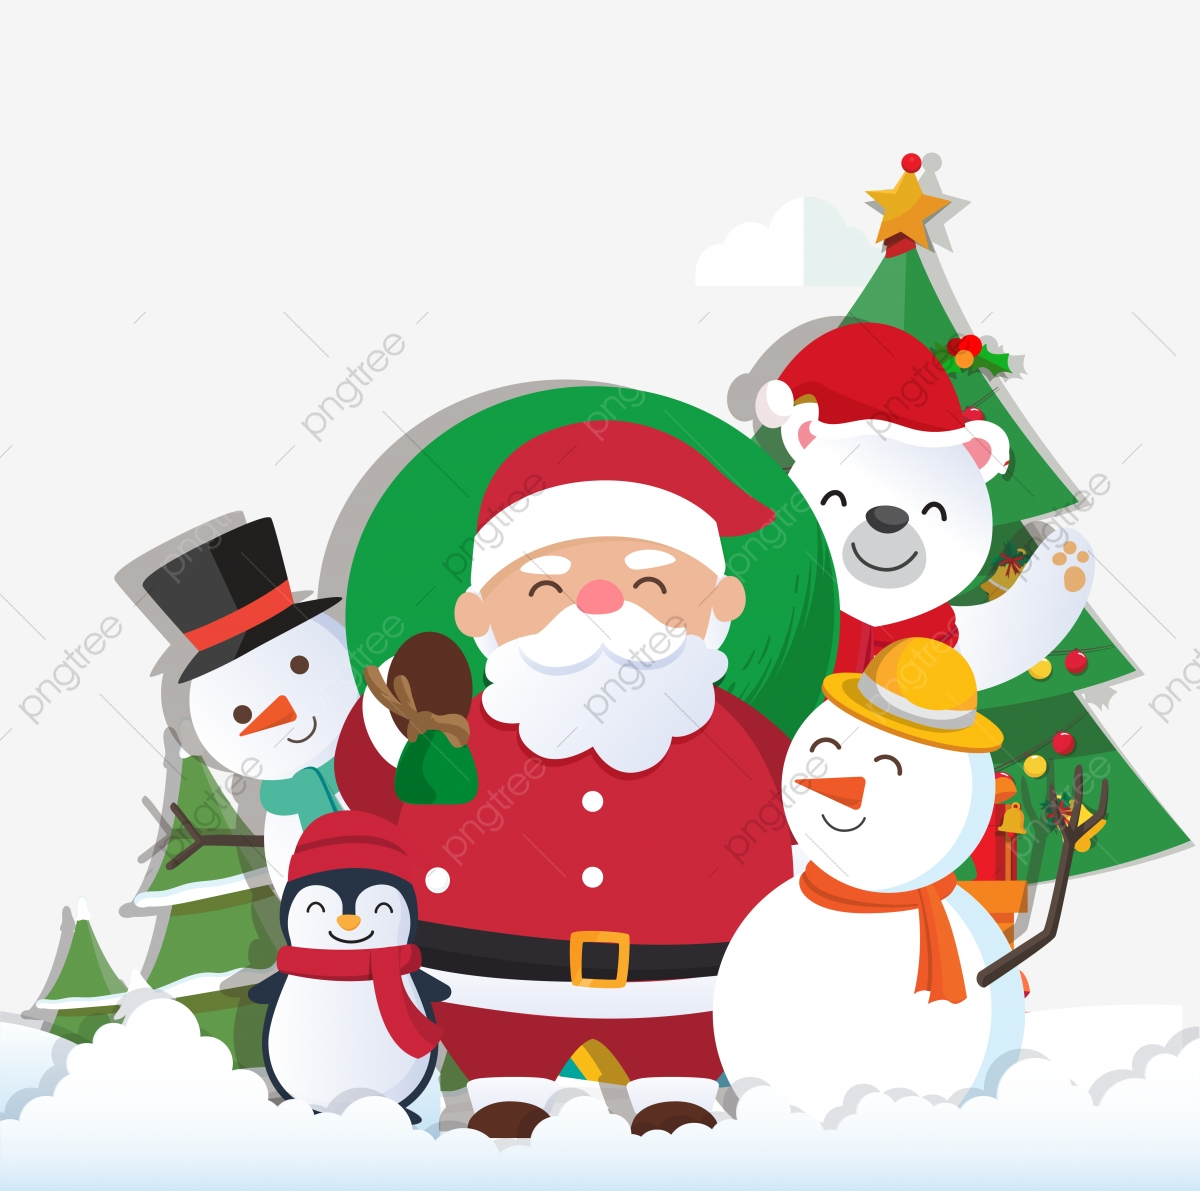 Christmas Background With Santa Claus And Merry Christmas.